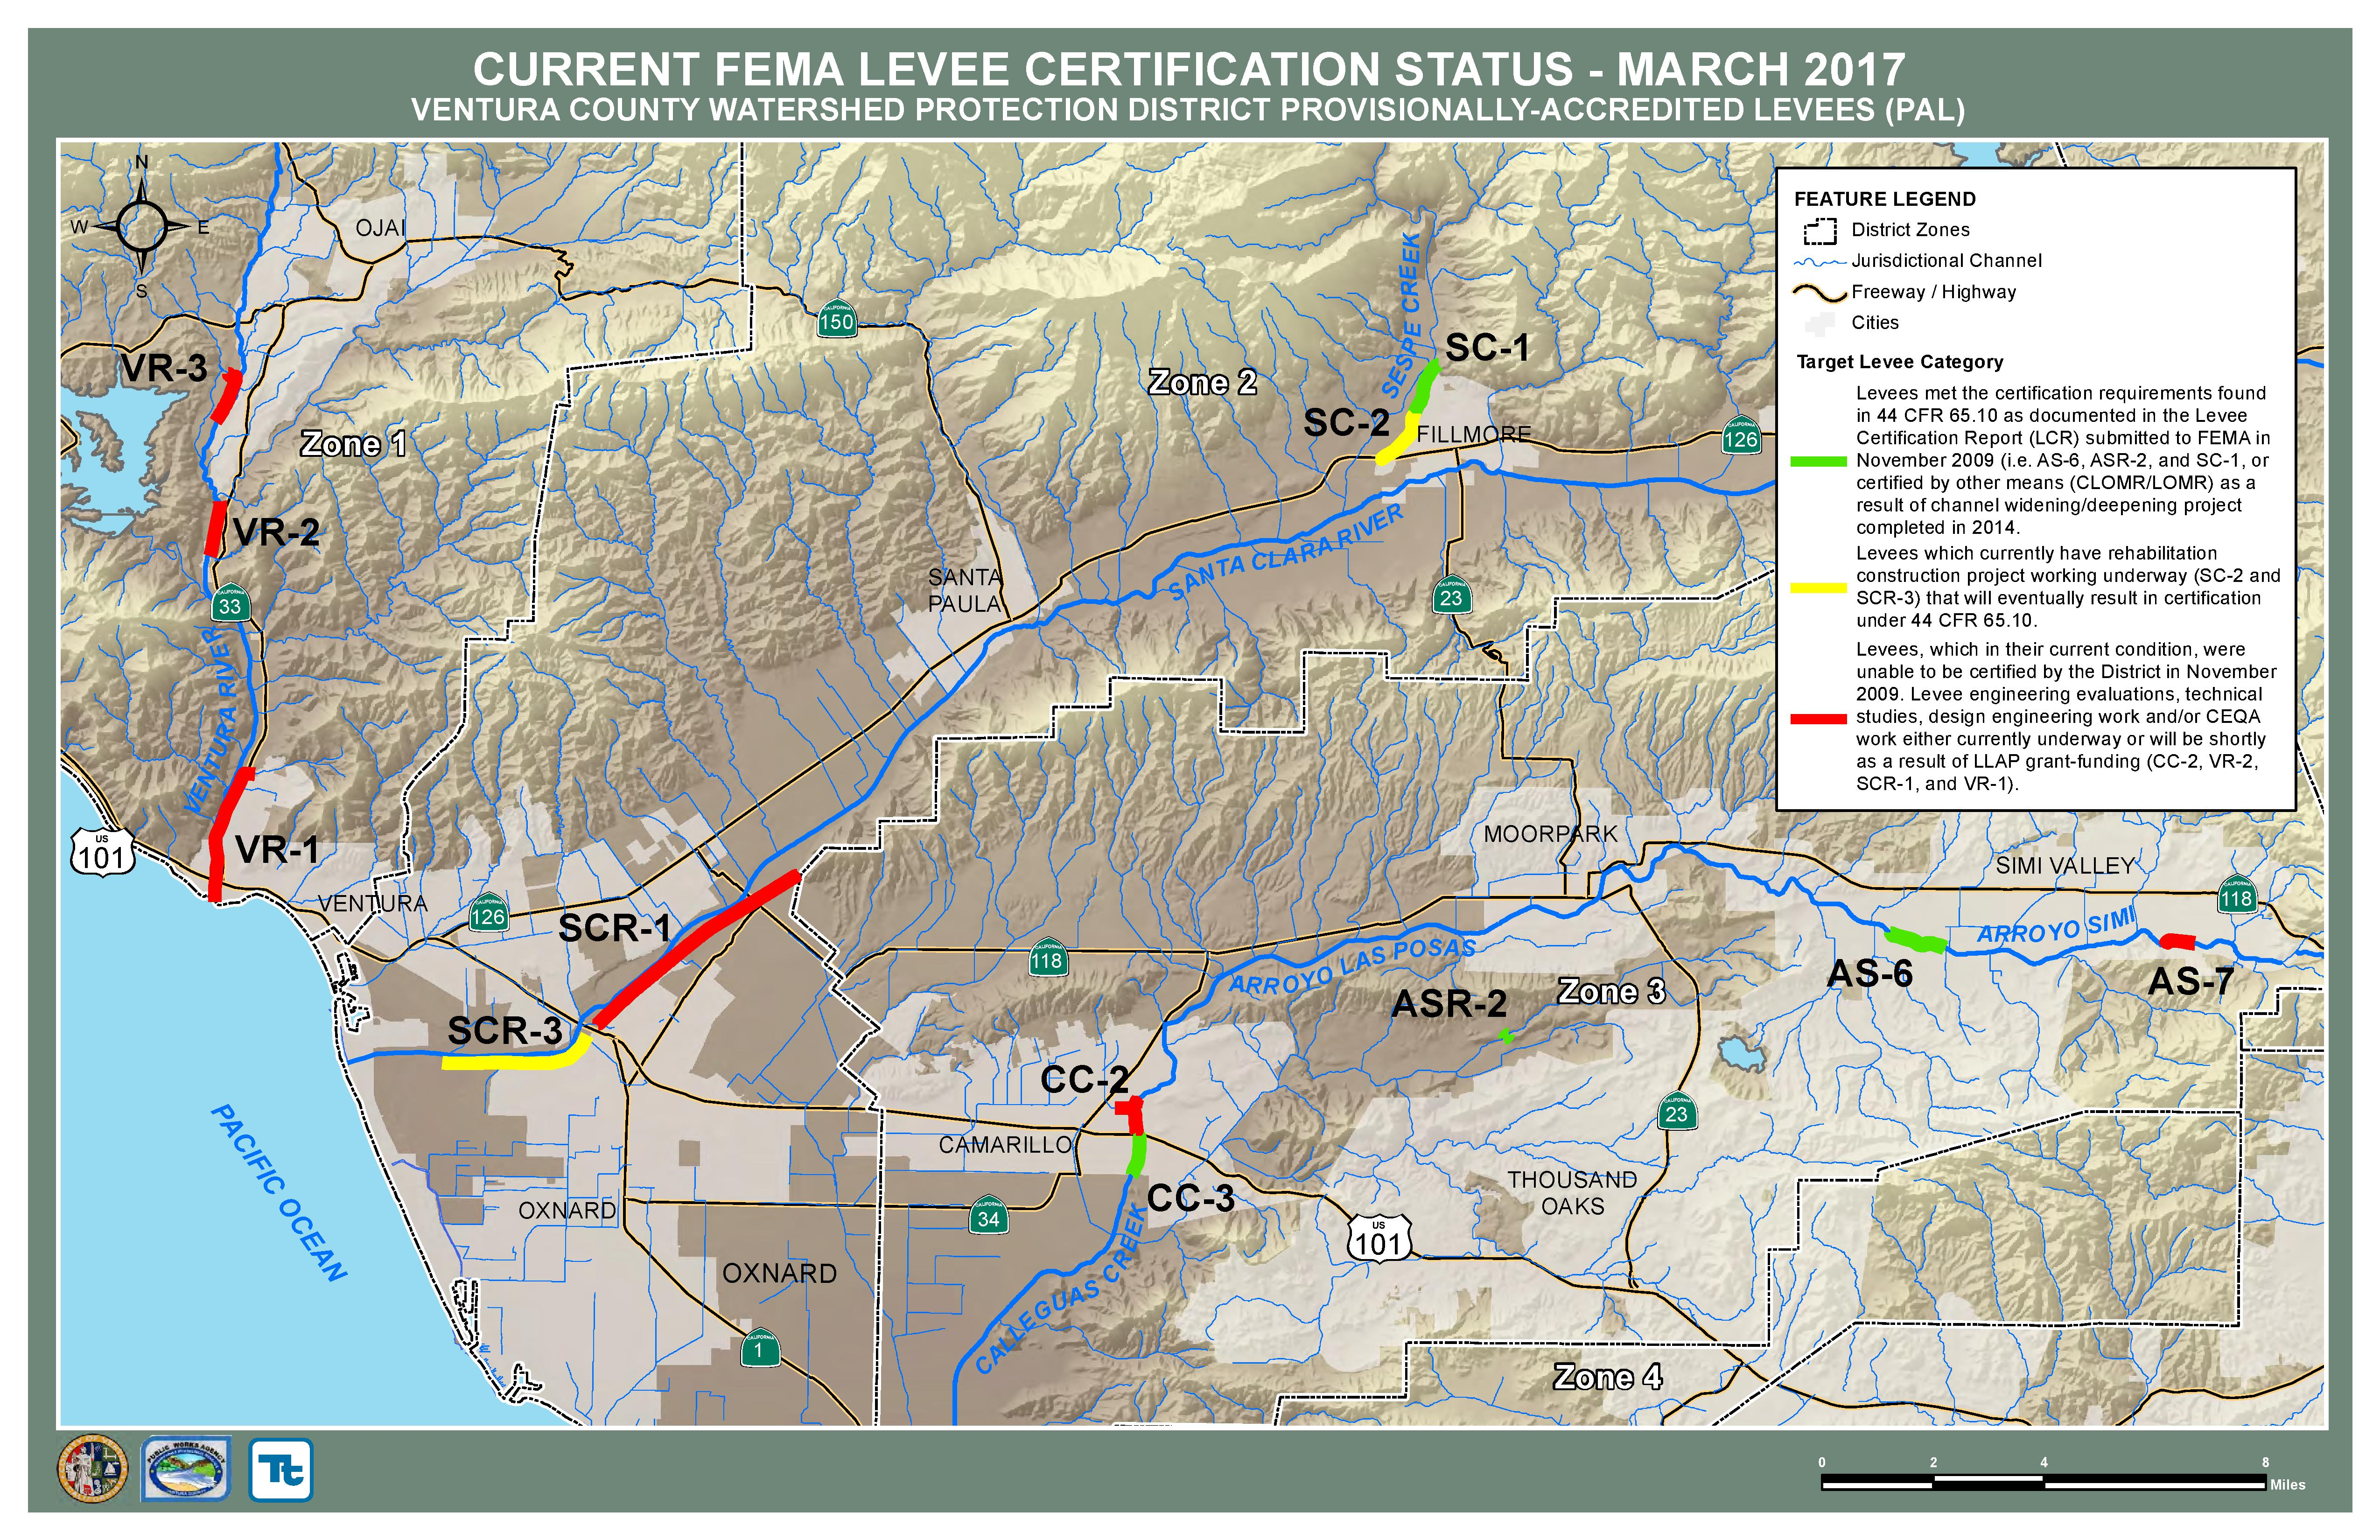 CURRENT FEMA LEVEE CERTIFICATION STATUS - MARCH 2017